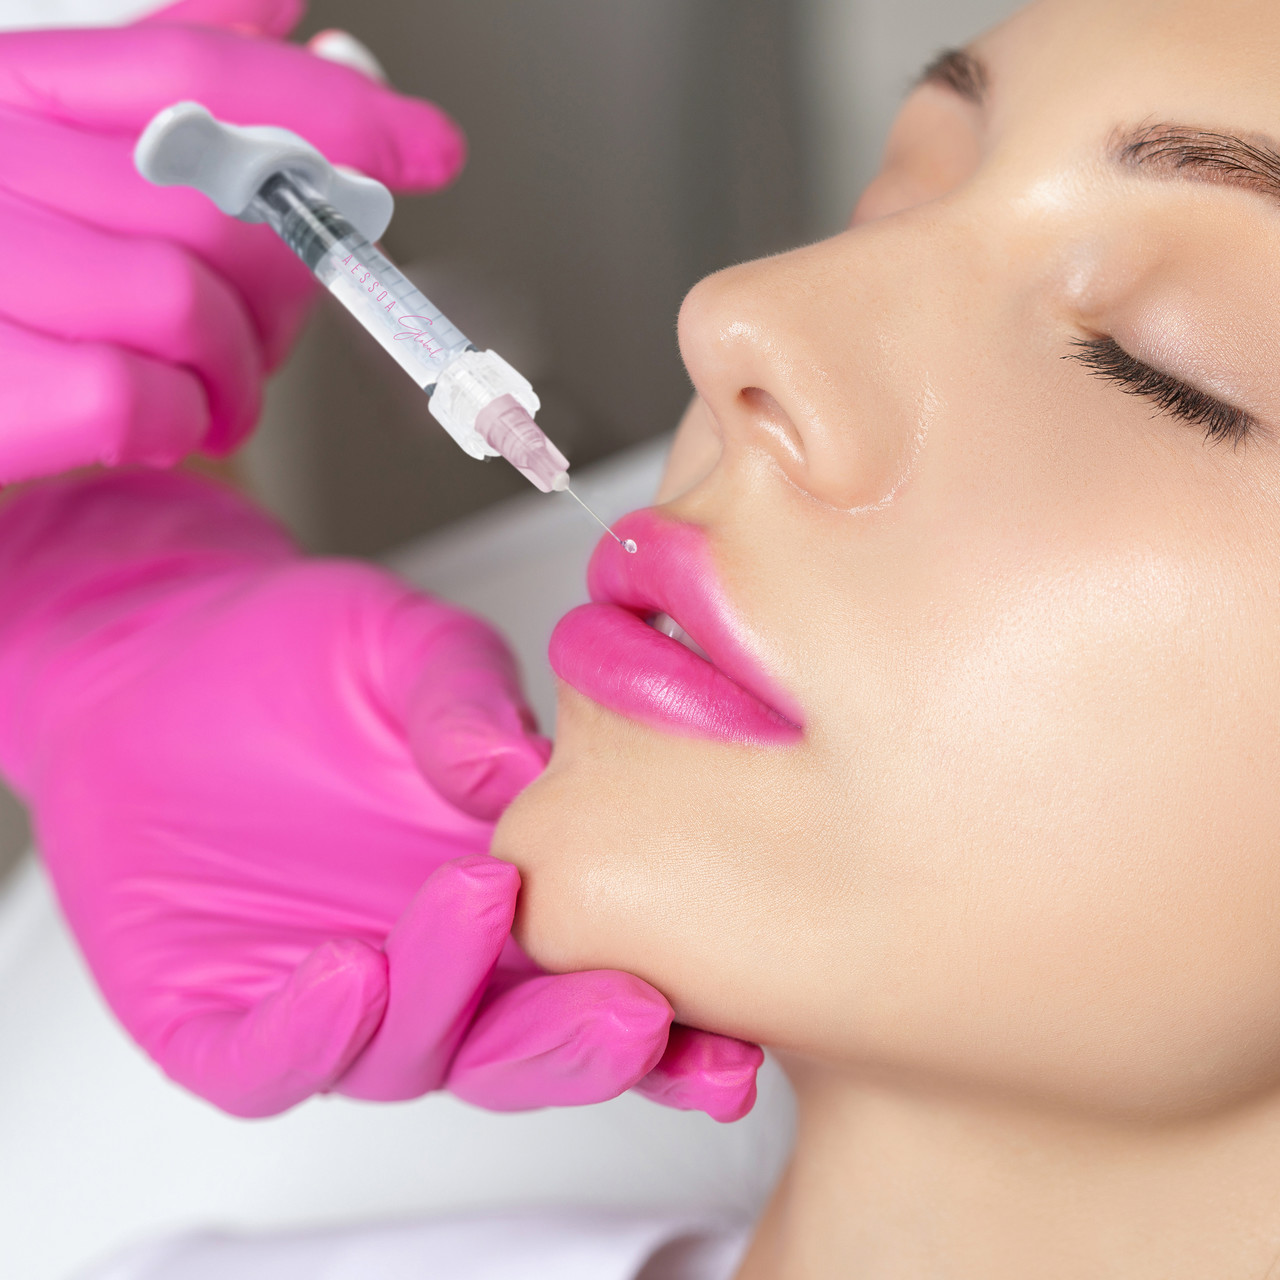 WHAT IS AESSOA FILLER?